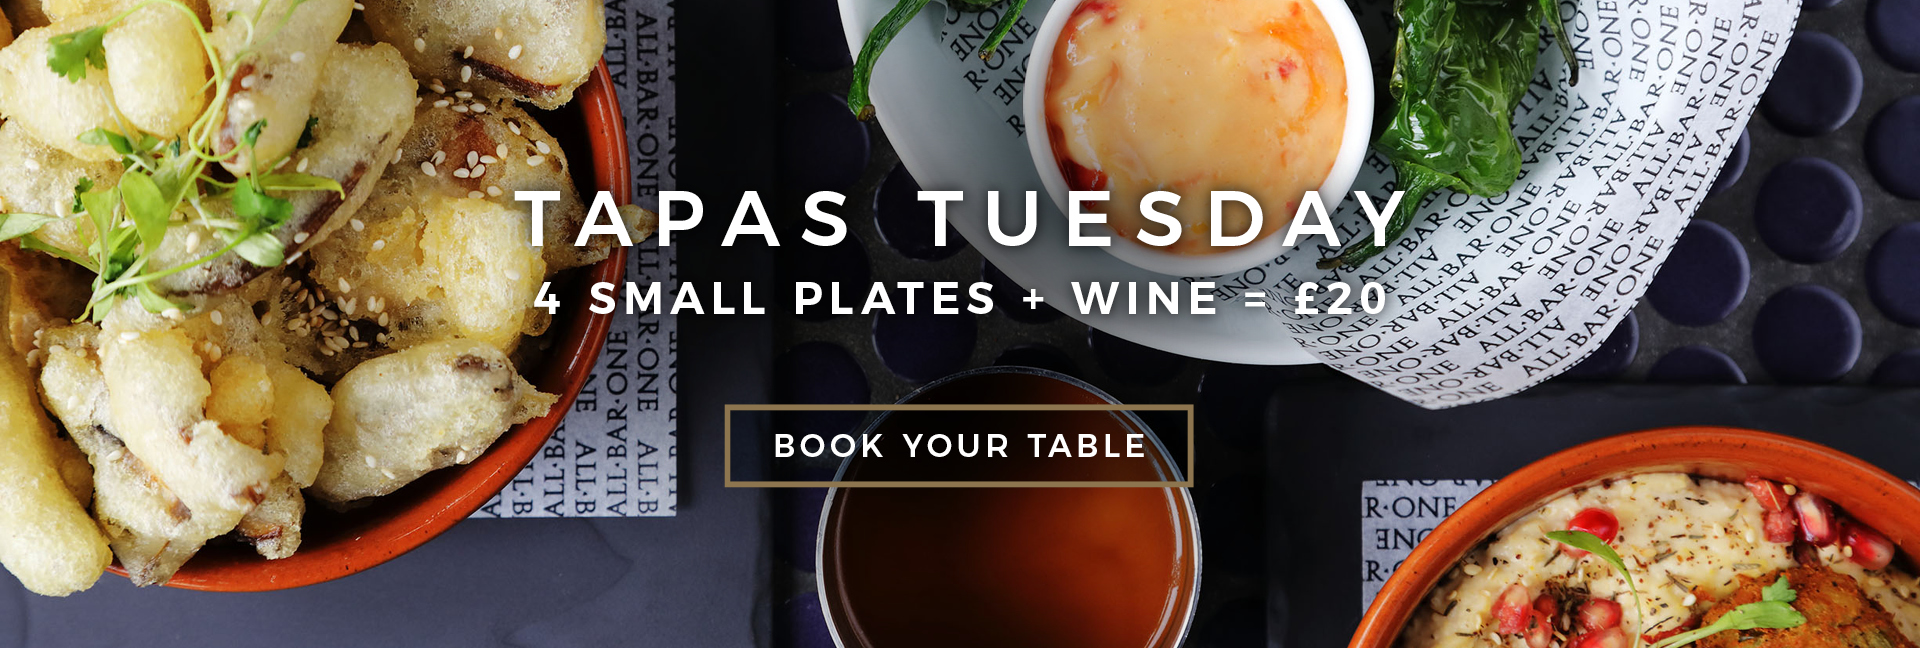 Tapas Tuesday at All Bar One Brindleyplace - Book now